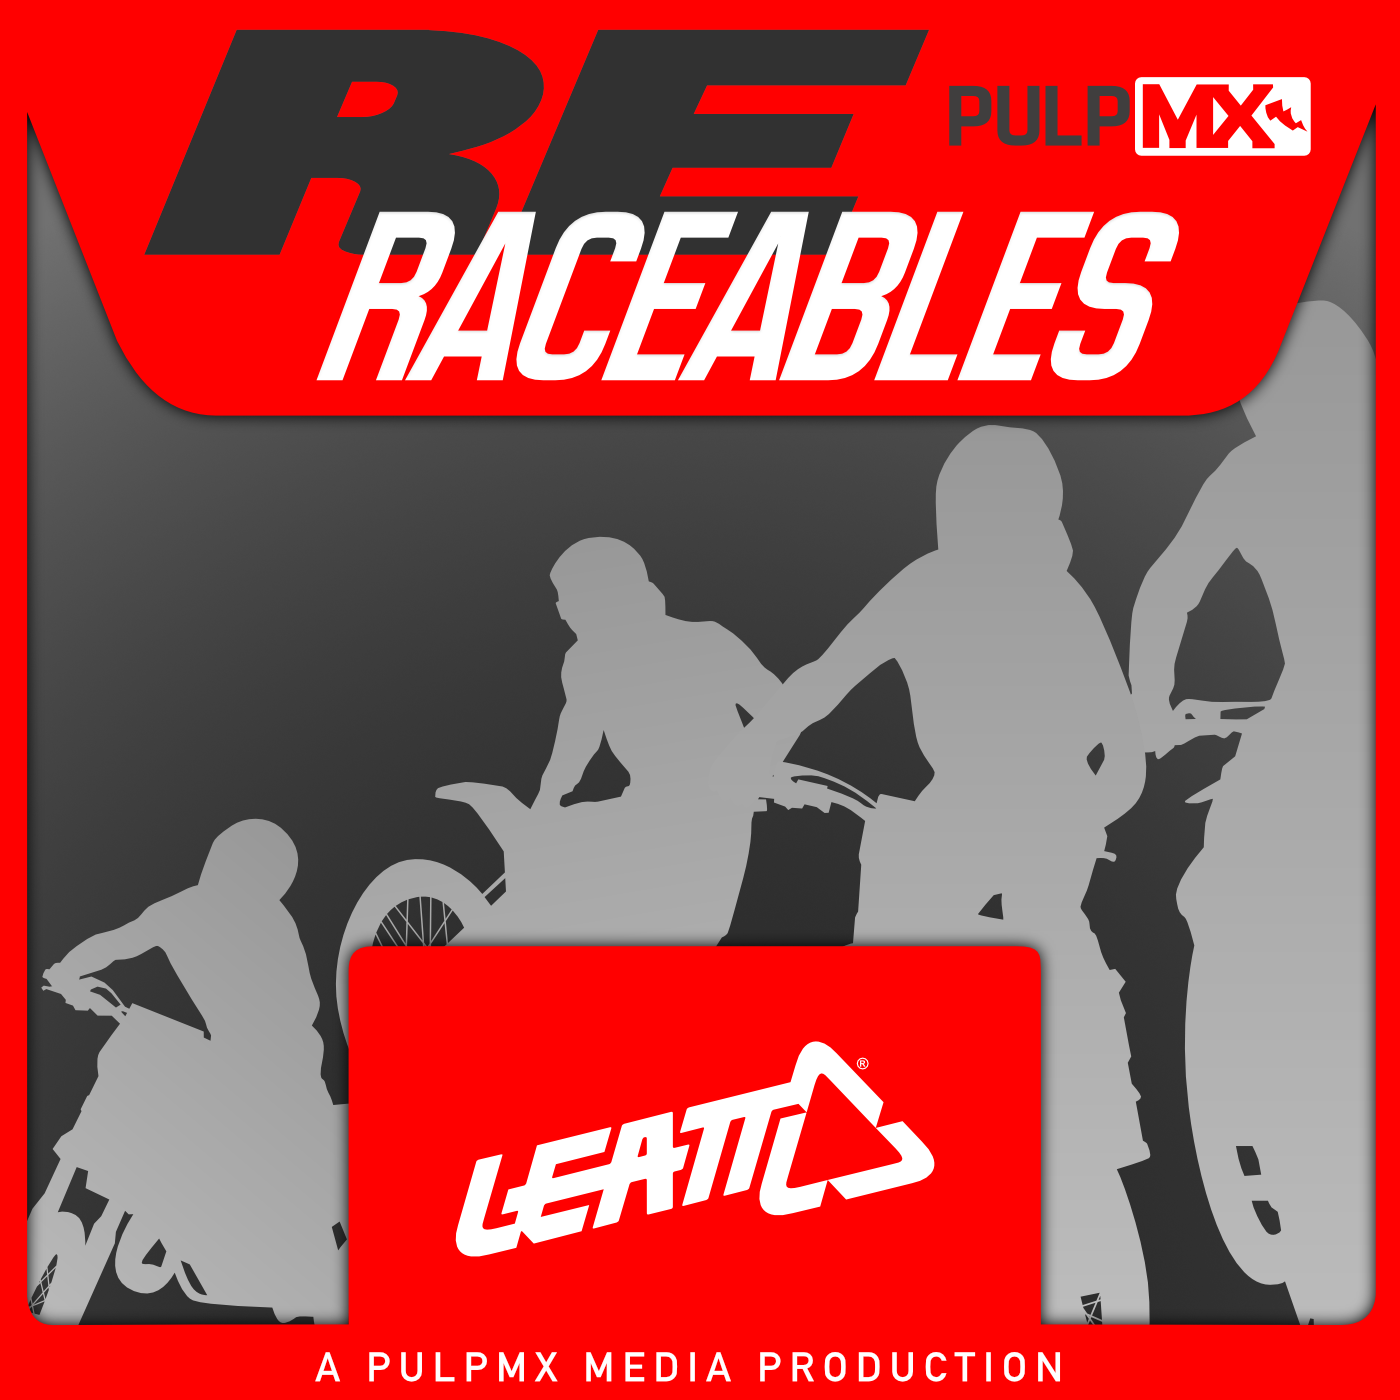 The Re-Raceables